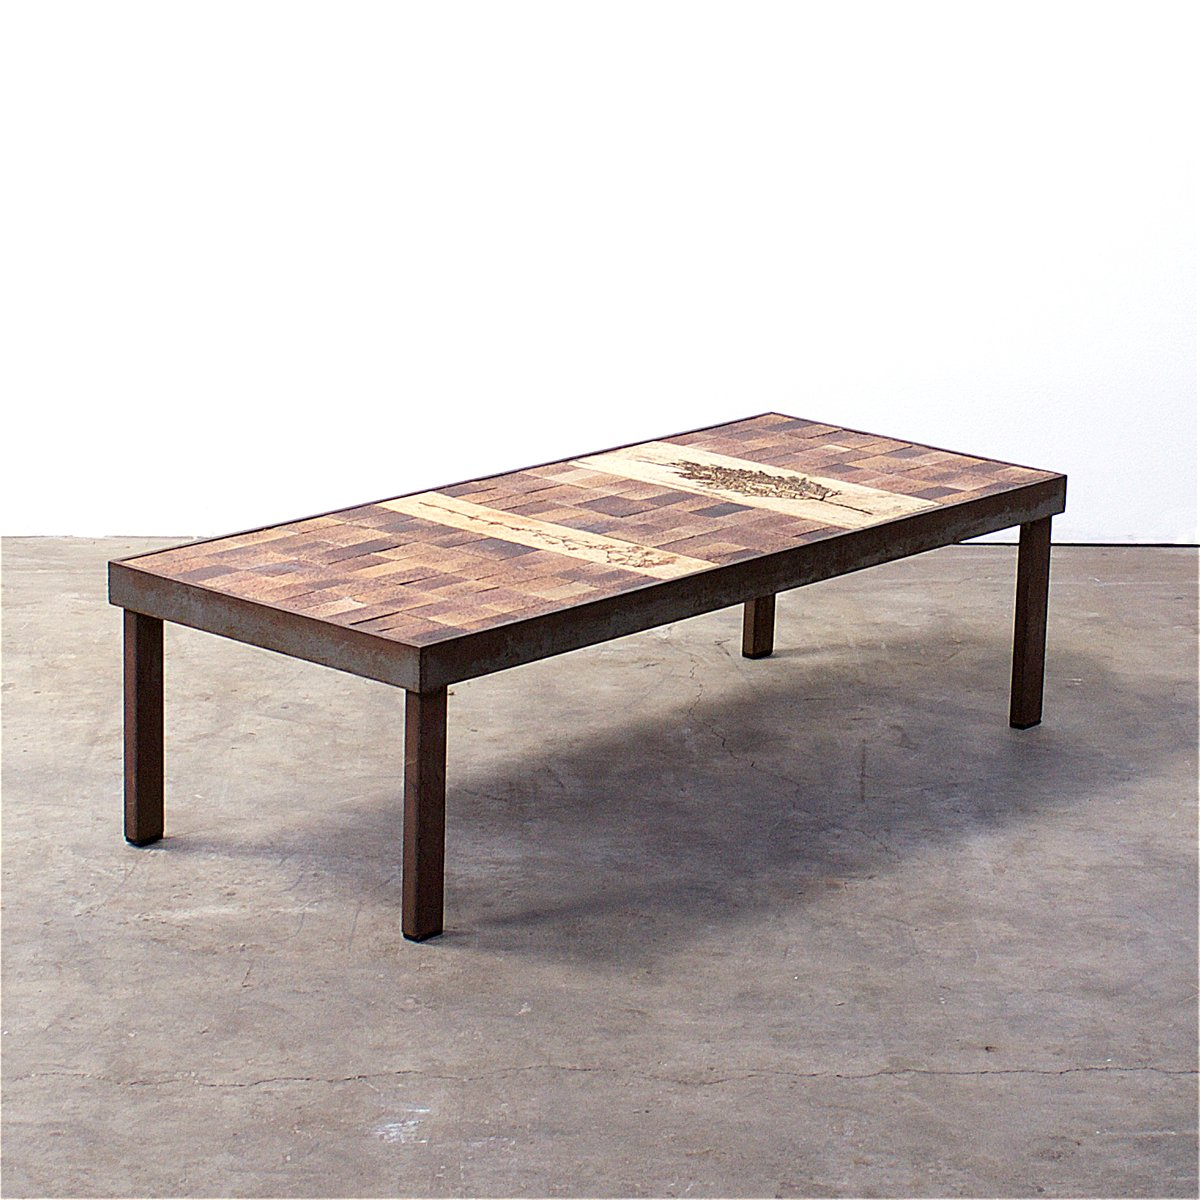 Coffee Table By Roger Capron 1950s For Sale At Pamono